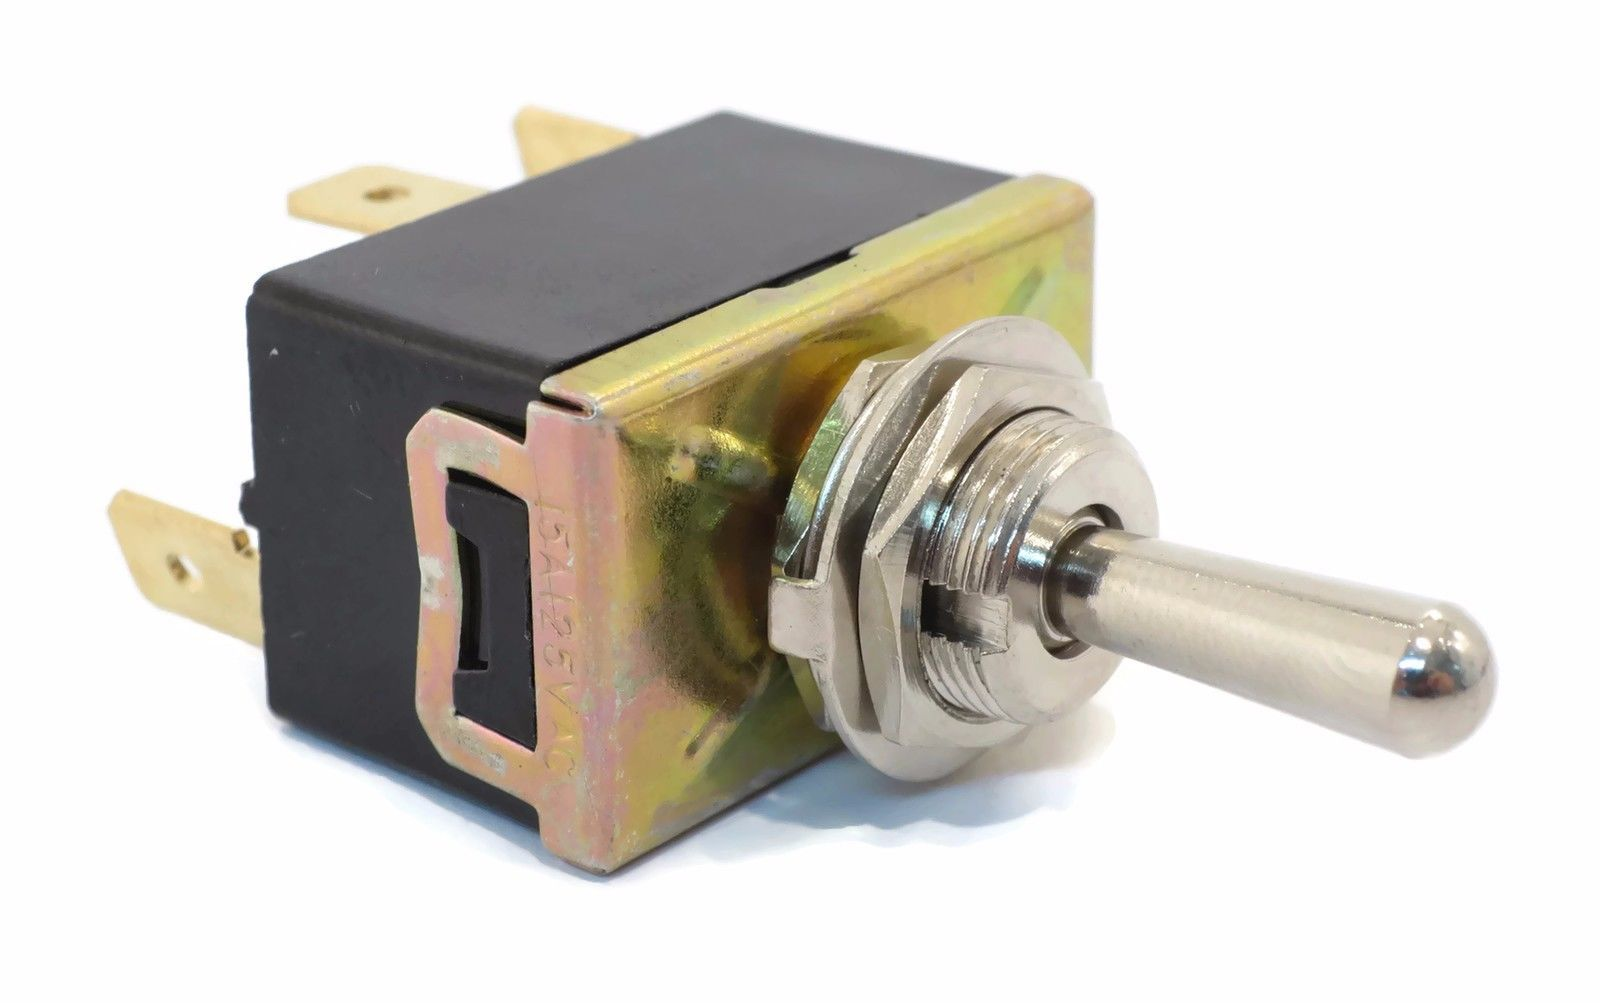 New Snow Plow LIFT SWITCH for Buyers SAM 1306080 for Diamond Meyer 21919 Blade by The ROP... by The ROP Shop